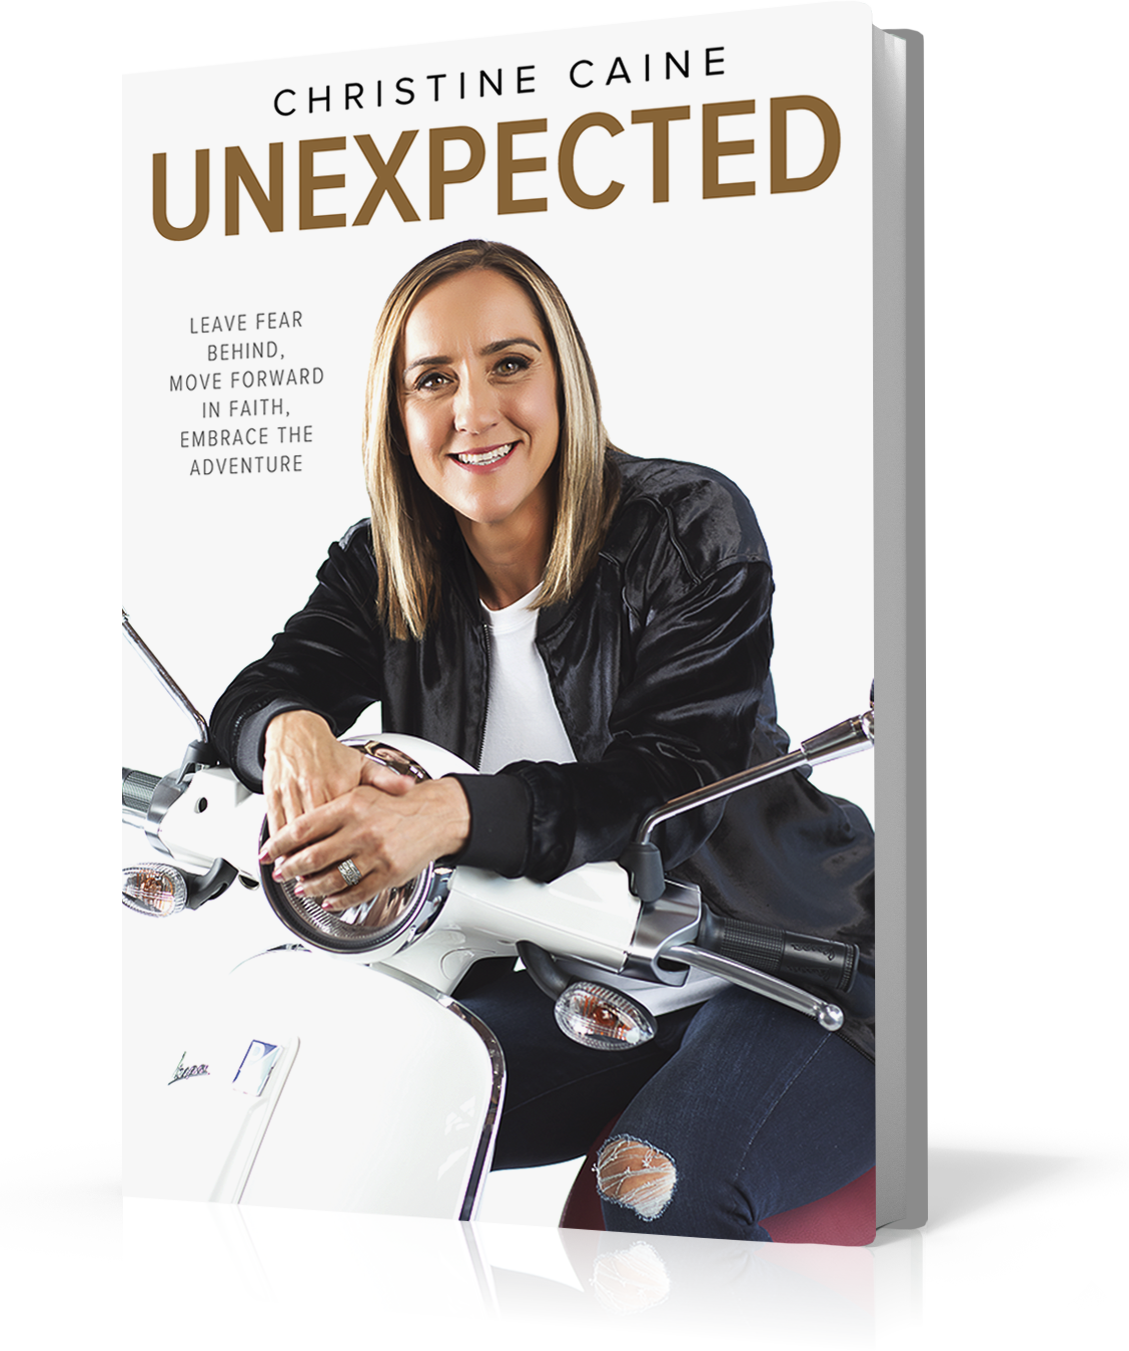 ROCKONLINE | New Creation Church | NCC | Joseph Prince | ROCK Bookshop | ROCK Bookstore | Star Vista | Unexpected | Christine Caine | Free delivery for Singapore Orders above $50.